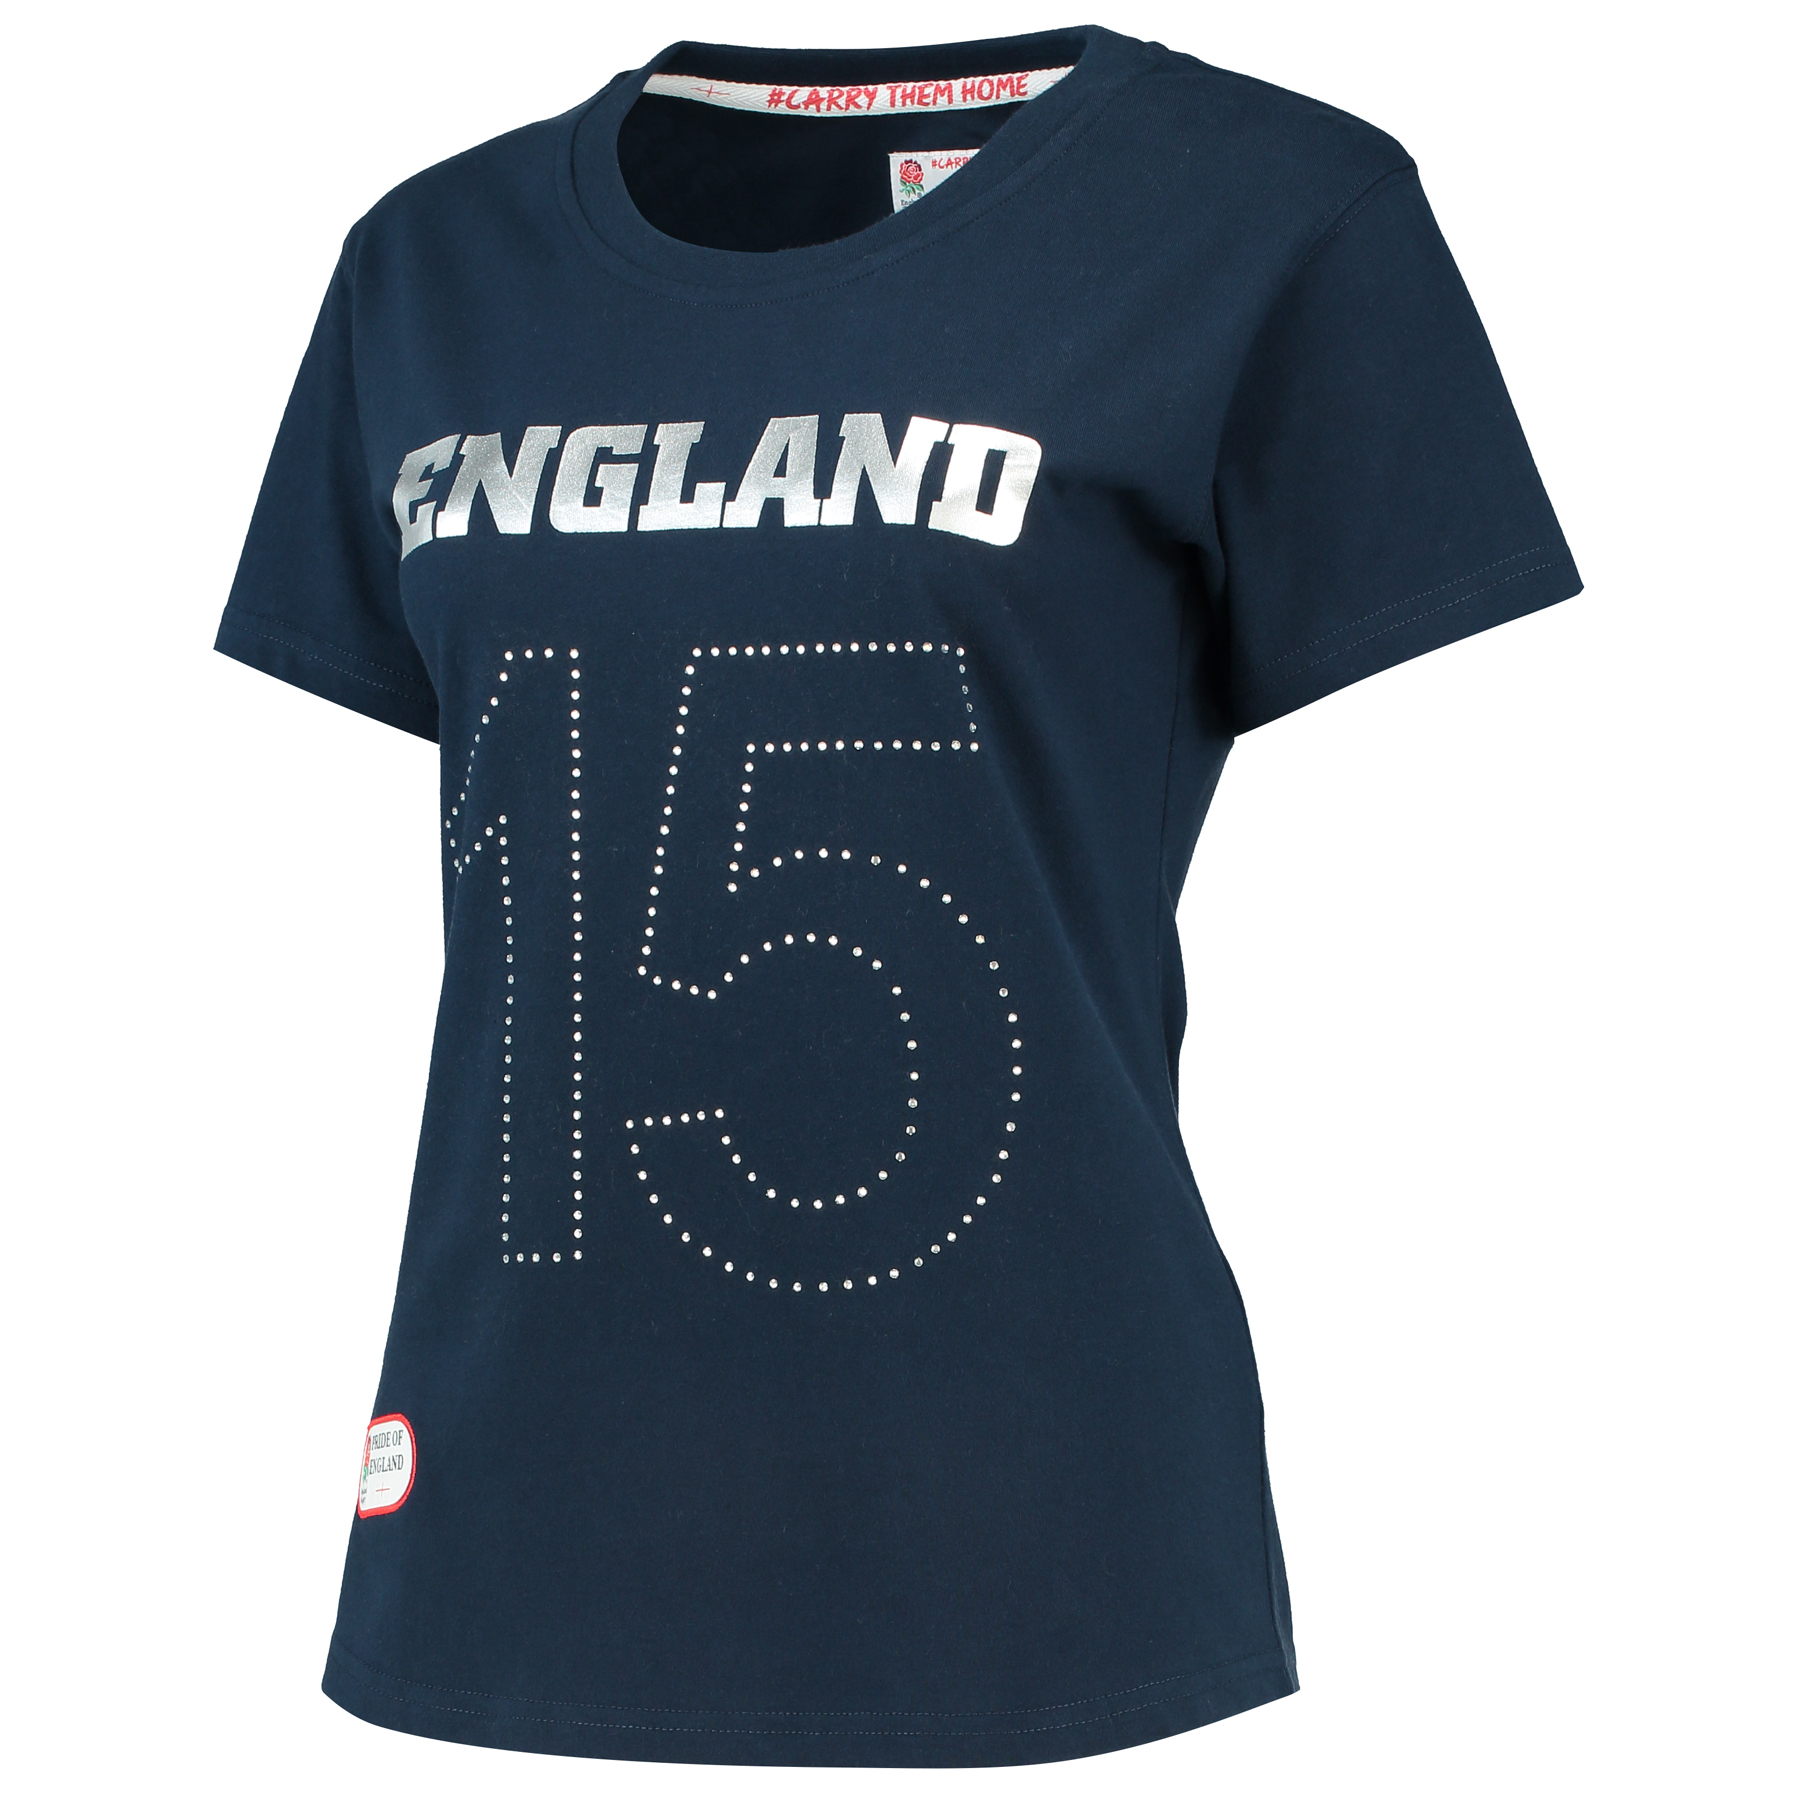 England Classics Collection England 15 T-Shirt - Navy - Womens